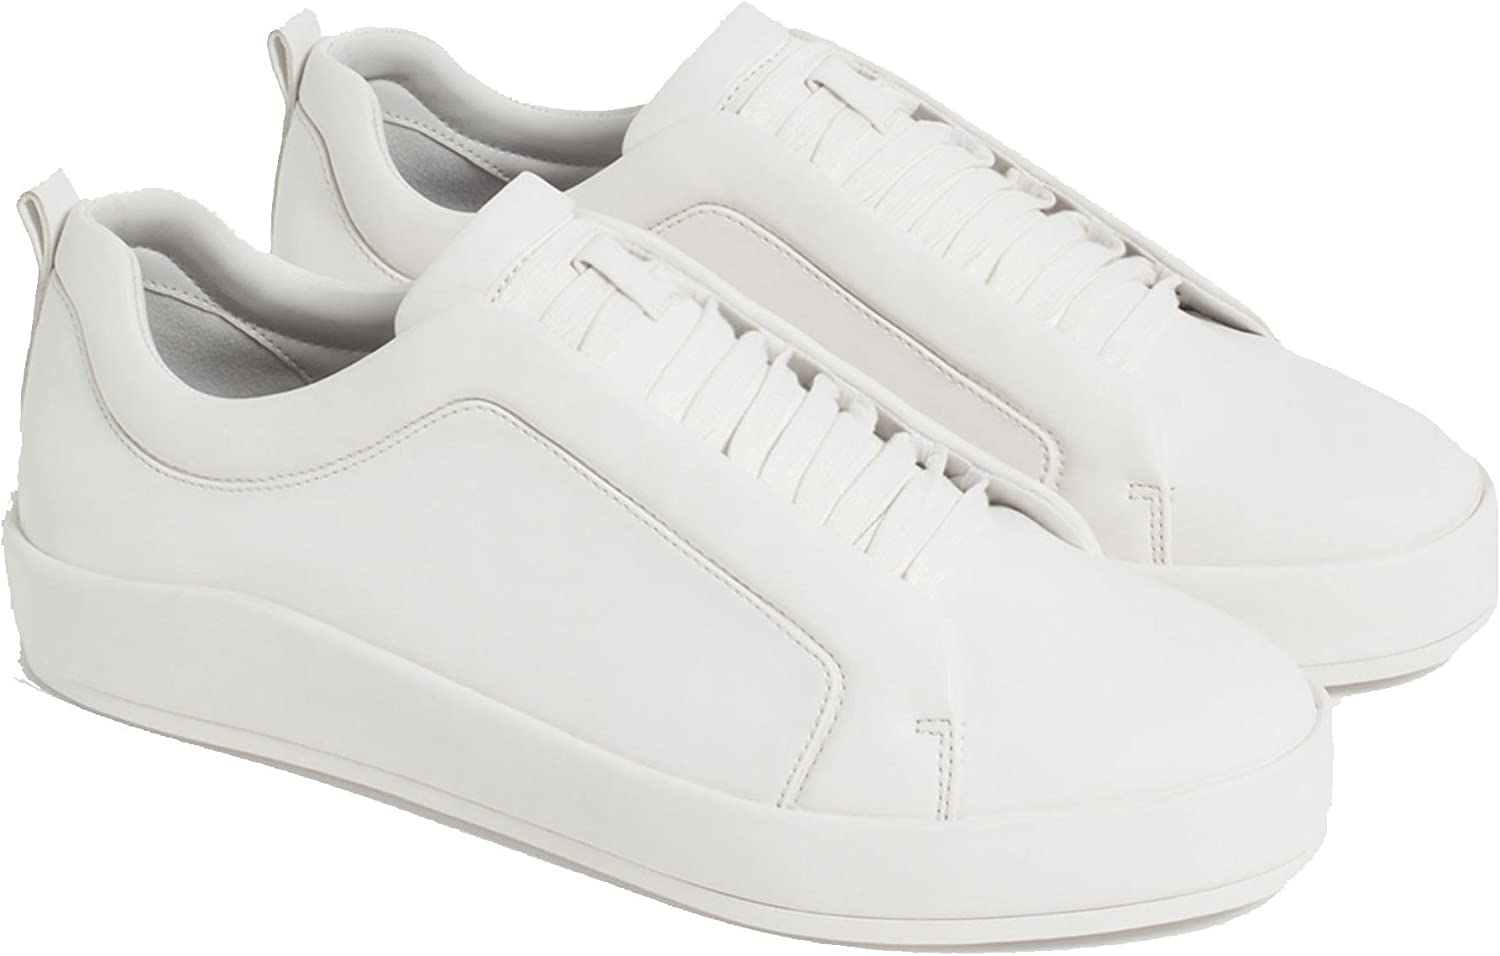 Concealed Laces 2454/102 (43 EU) White